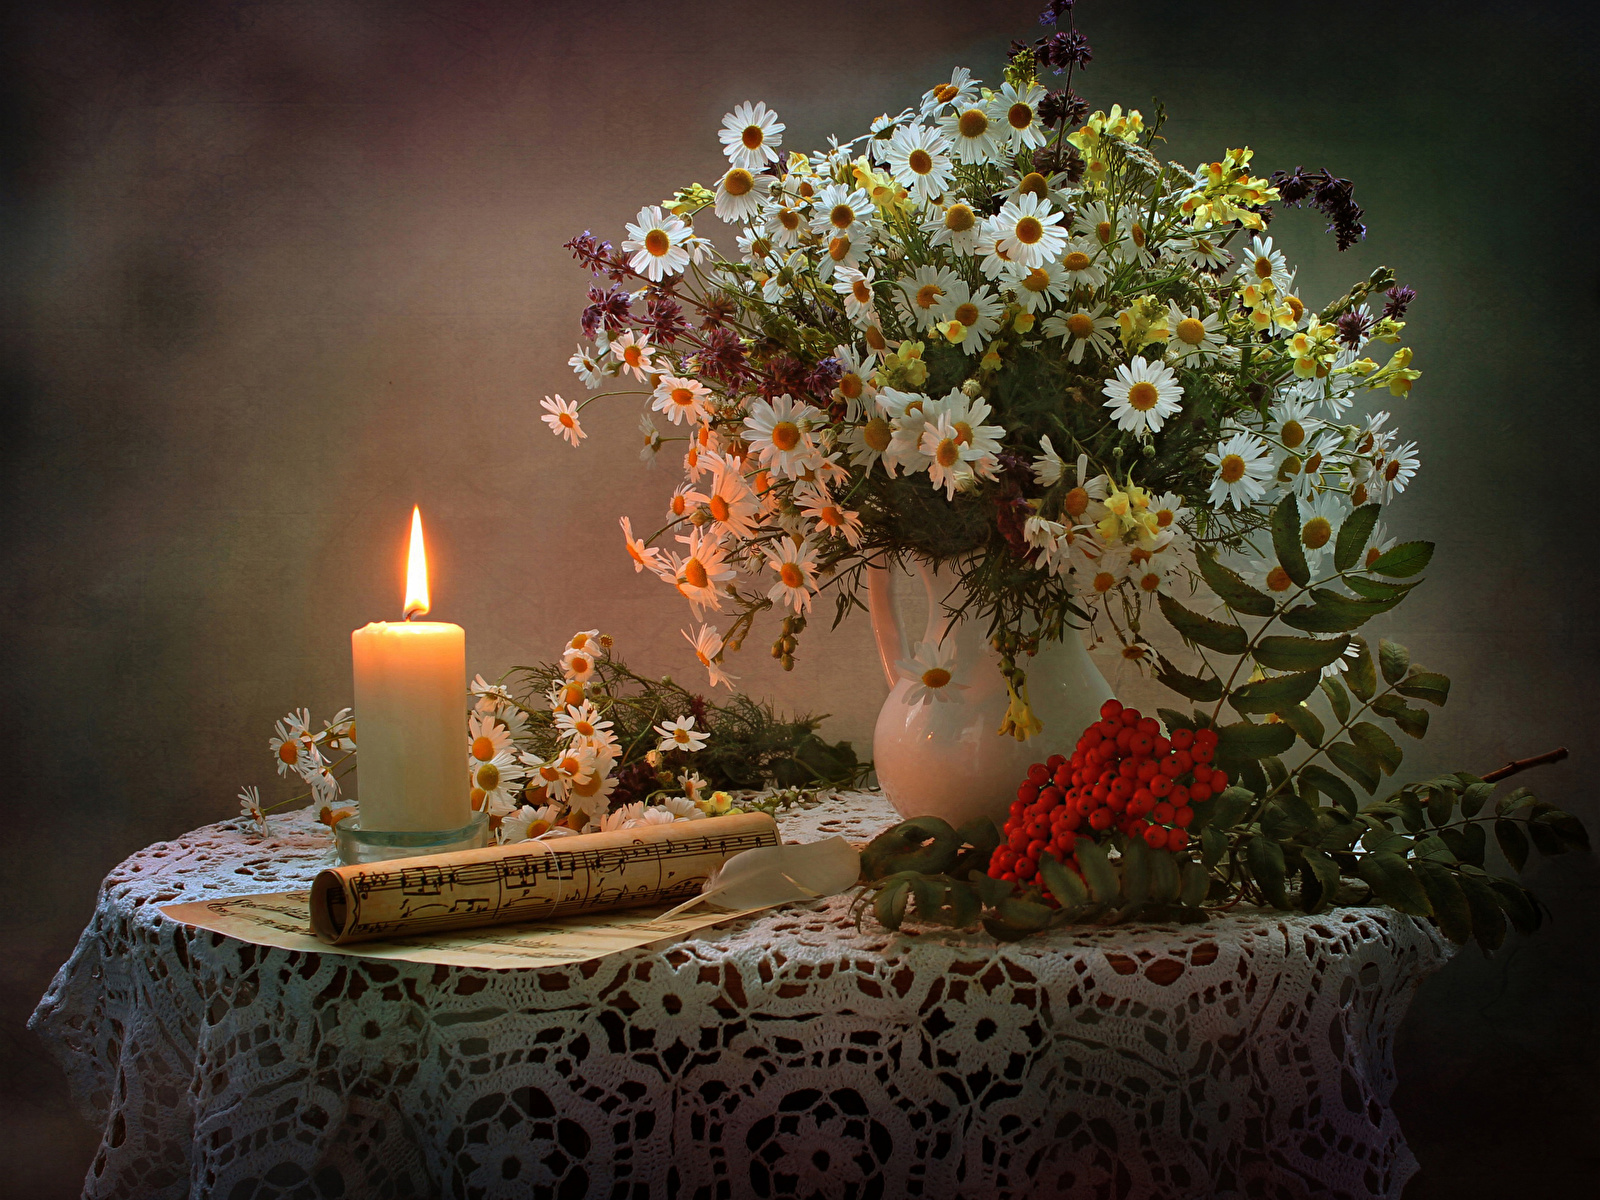 Still-life_Bouquets_Camomiles_Candles_Sorbus_Notes_547078_1600x1200.jpg